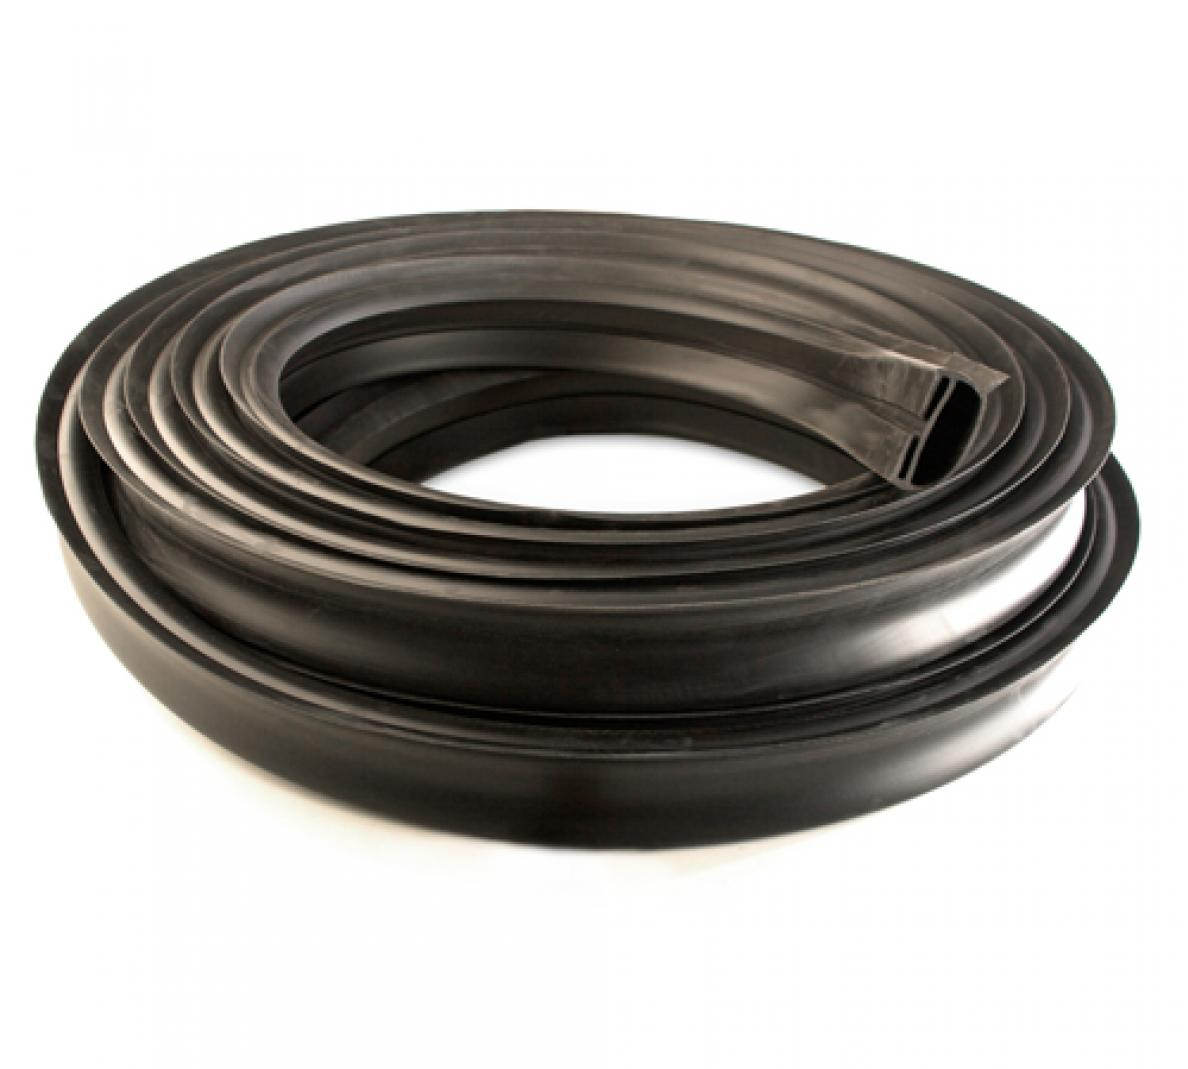 Bottom Roller Shutter Door Seal Ja Seals